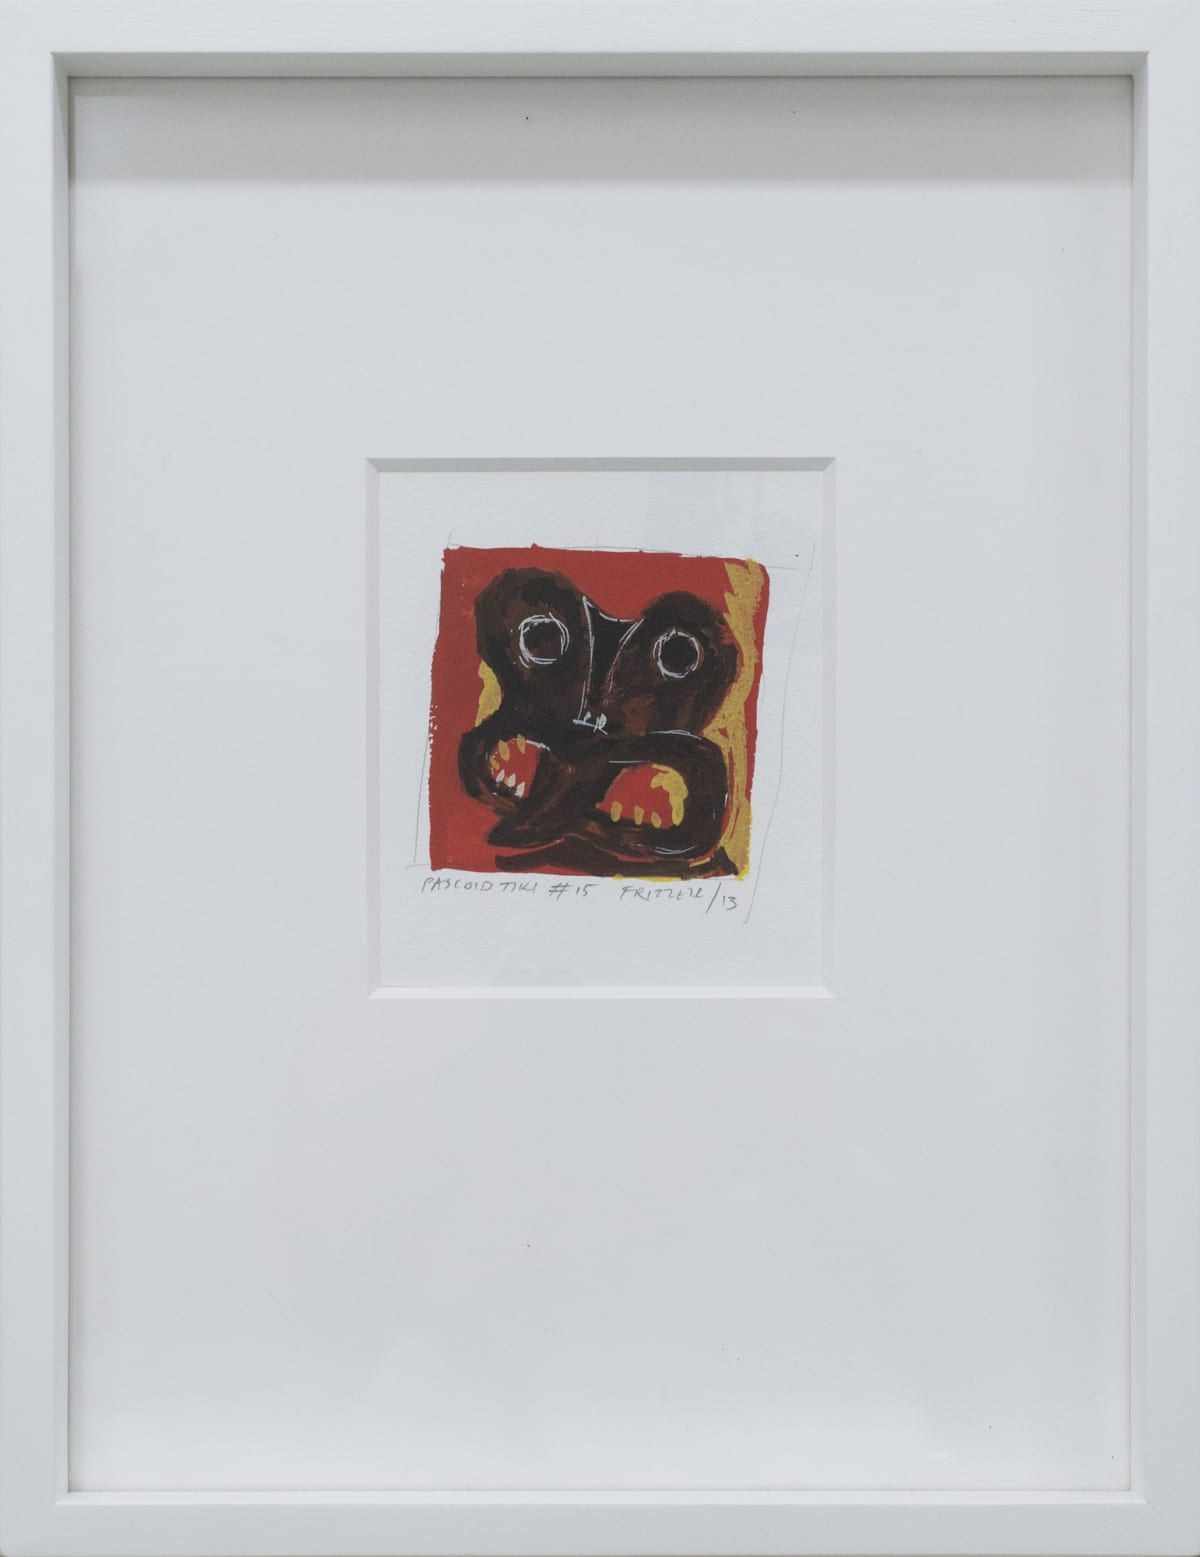 Dick FRIZZELL Pascoid Tiki #15, 2013 Gouache and pencil on paper 3.6 x 3.7 in 9.1 x 9.5 cm 38 x29cm (framed)